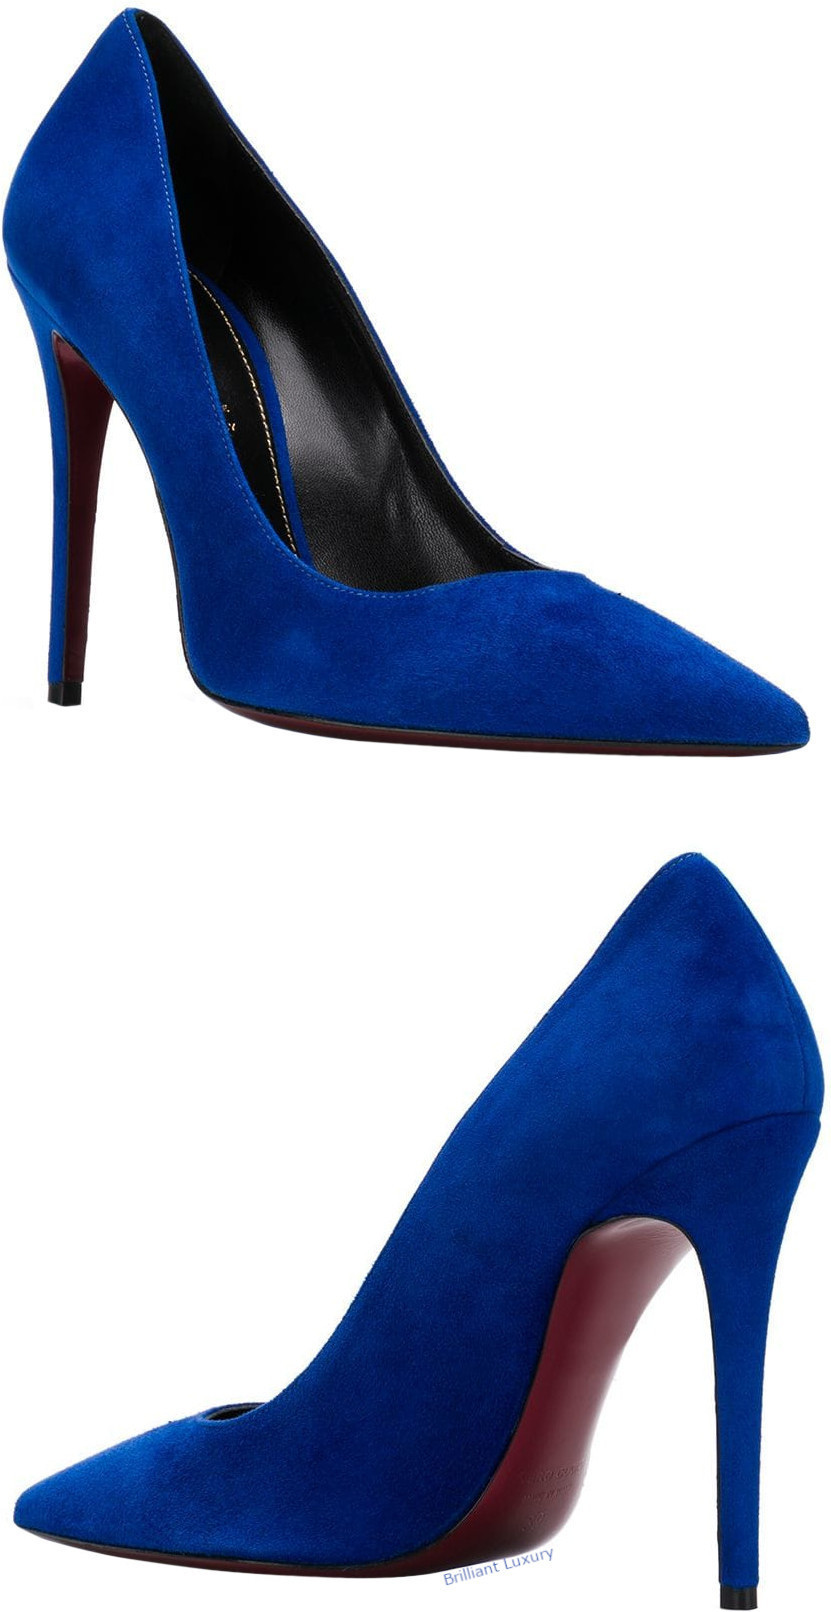 Deimille blue pointed slip-on pumps